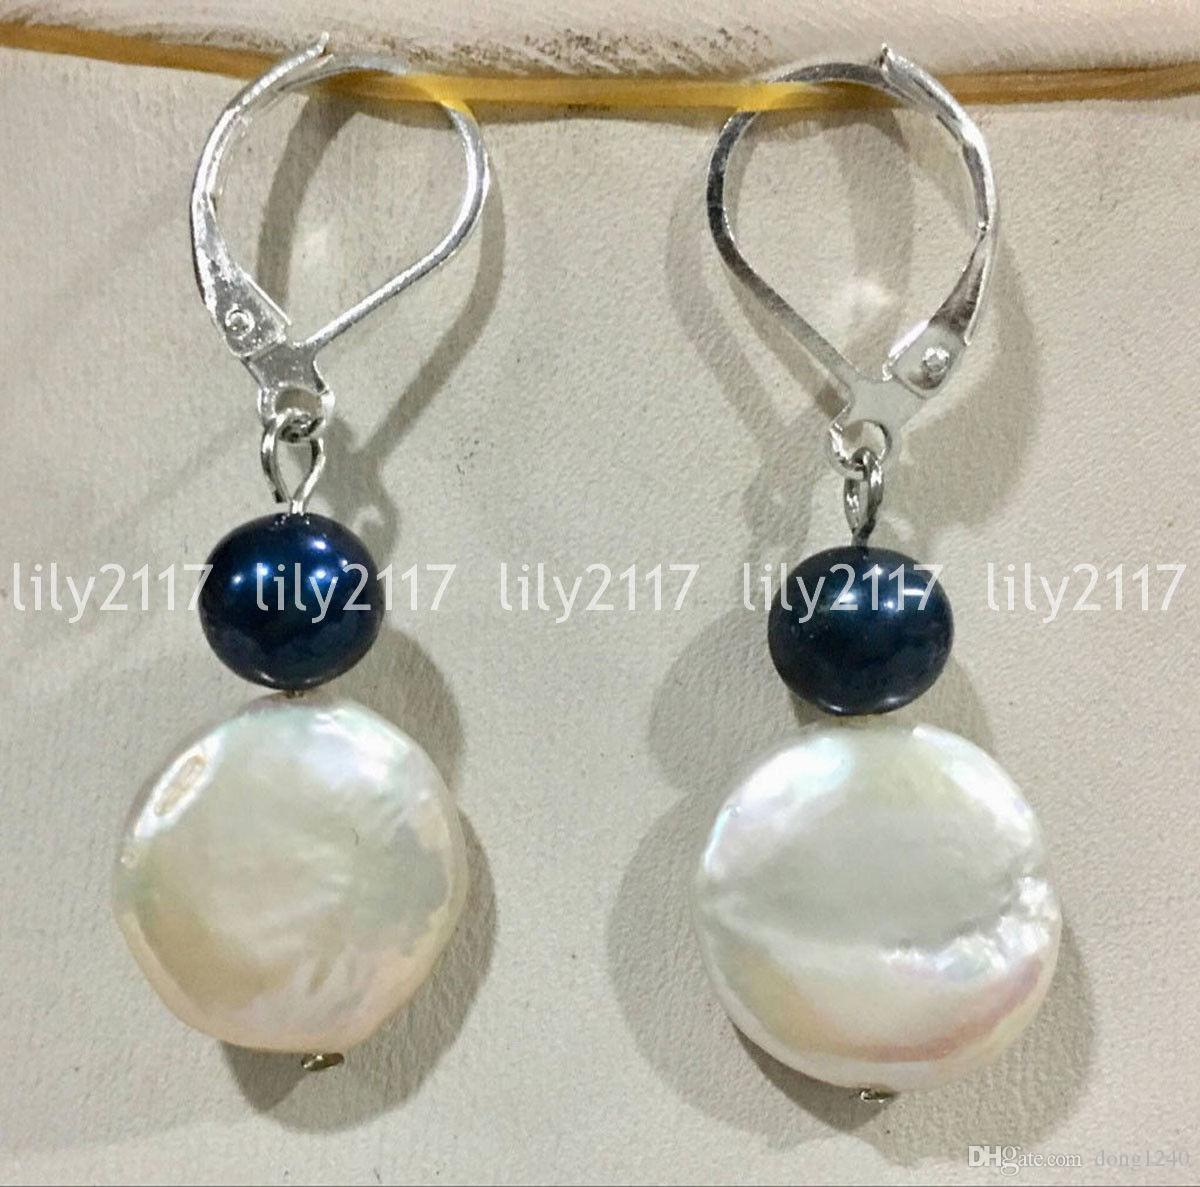 13-14MM HUGE baroque south sea pearl earrings 18K GOLD Red Coral REAL classic